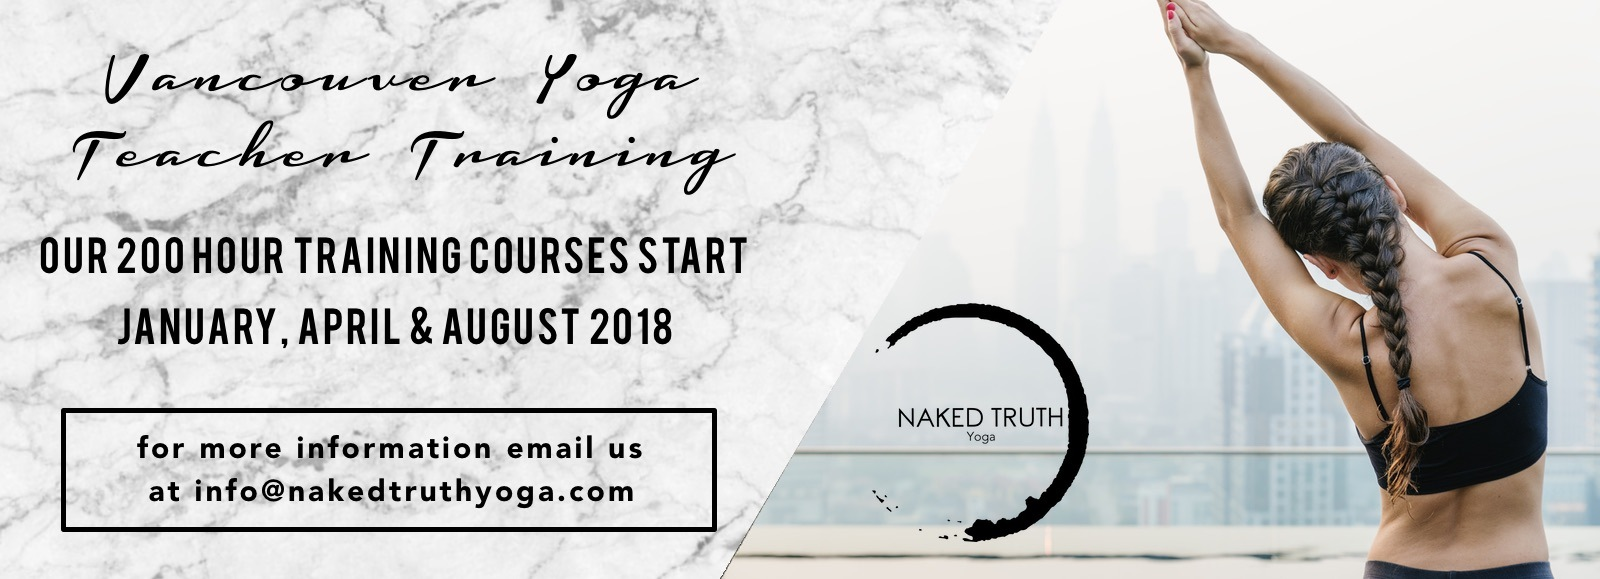 Vancouver 3 Day Kids Yoga Teacher Training March 2018